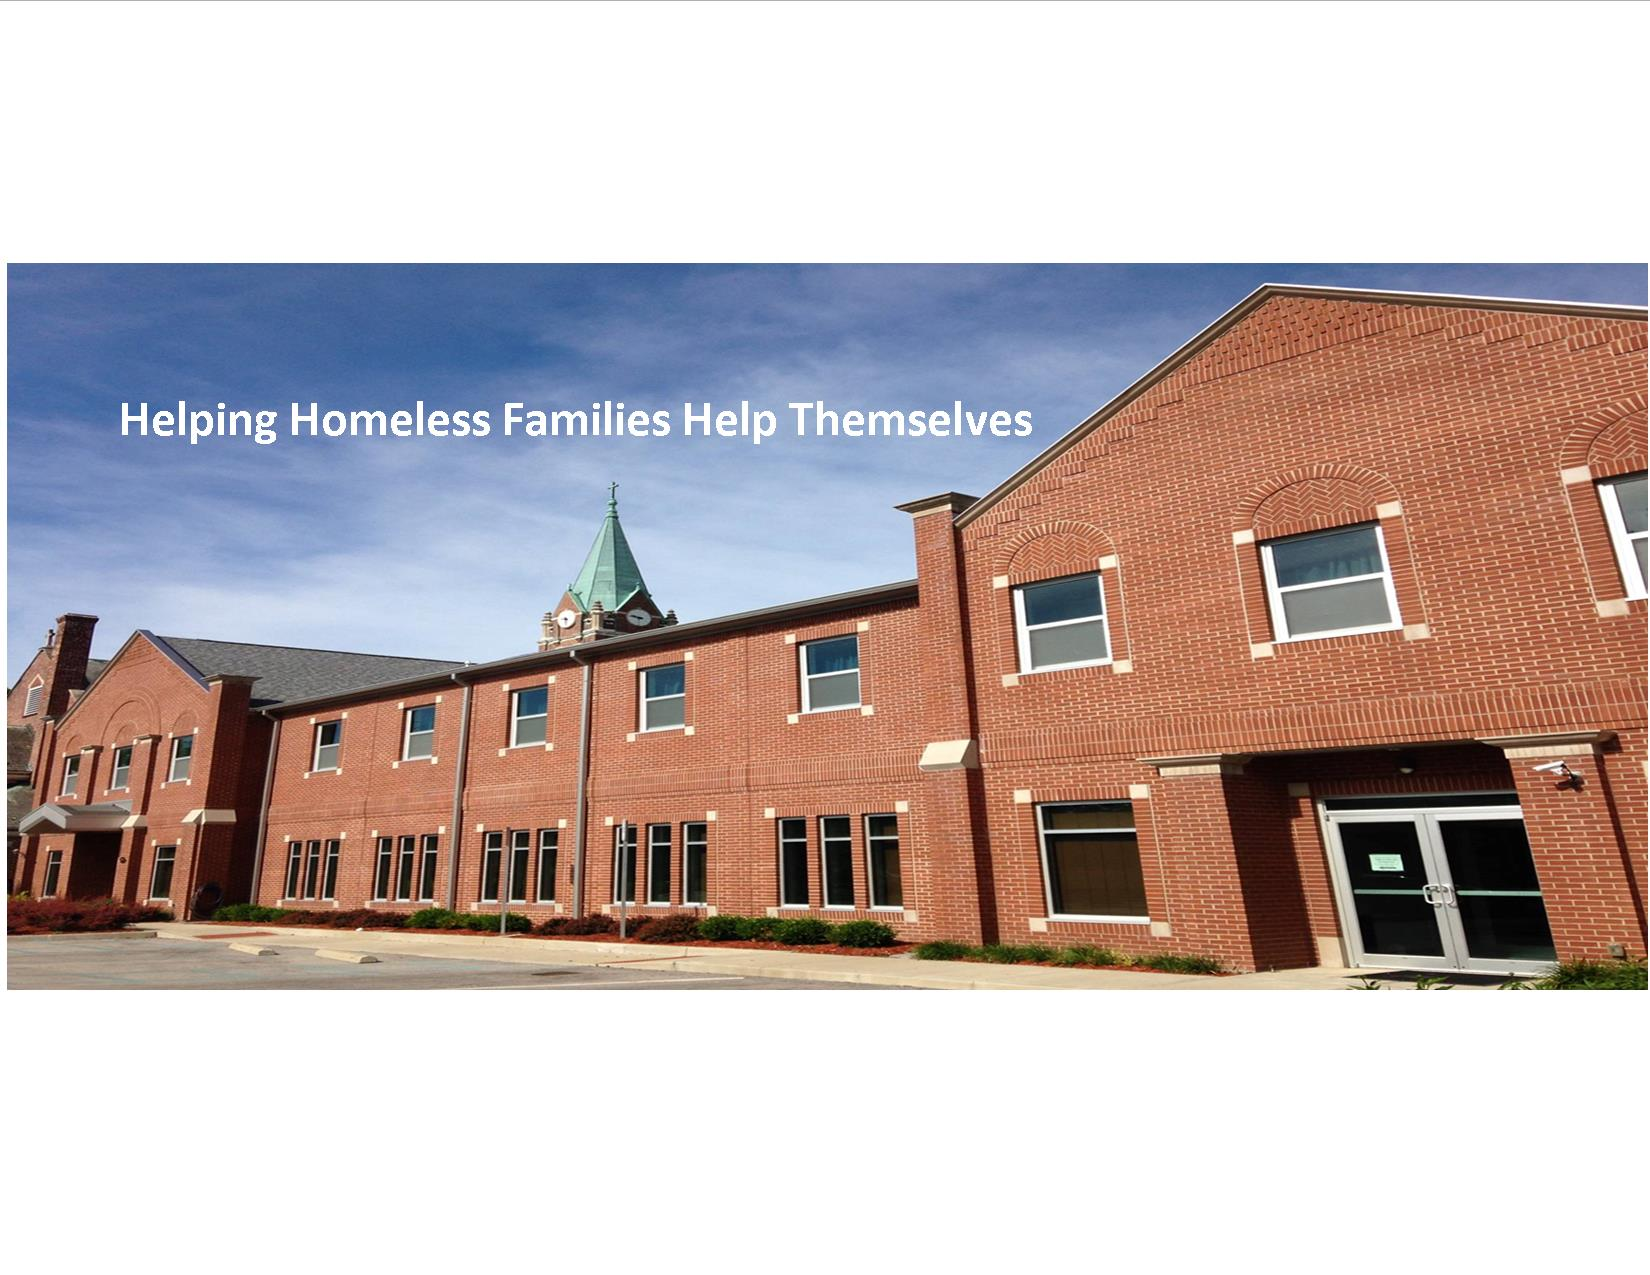 Holy Family Transitional Housing